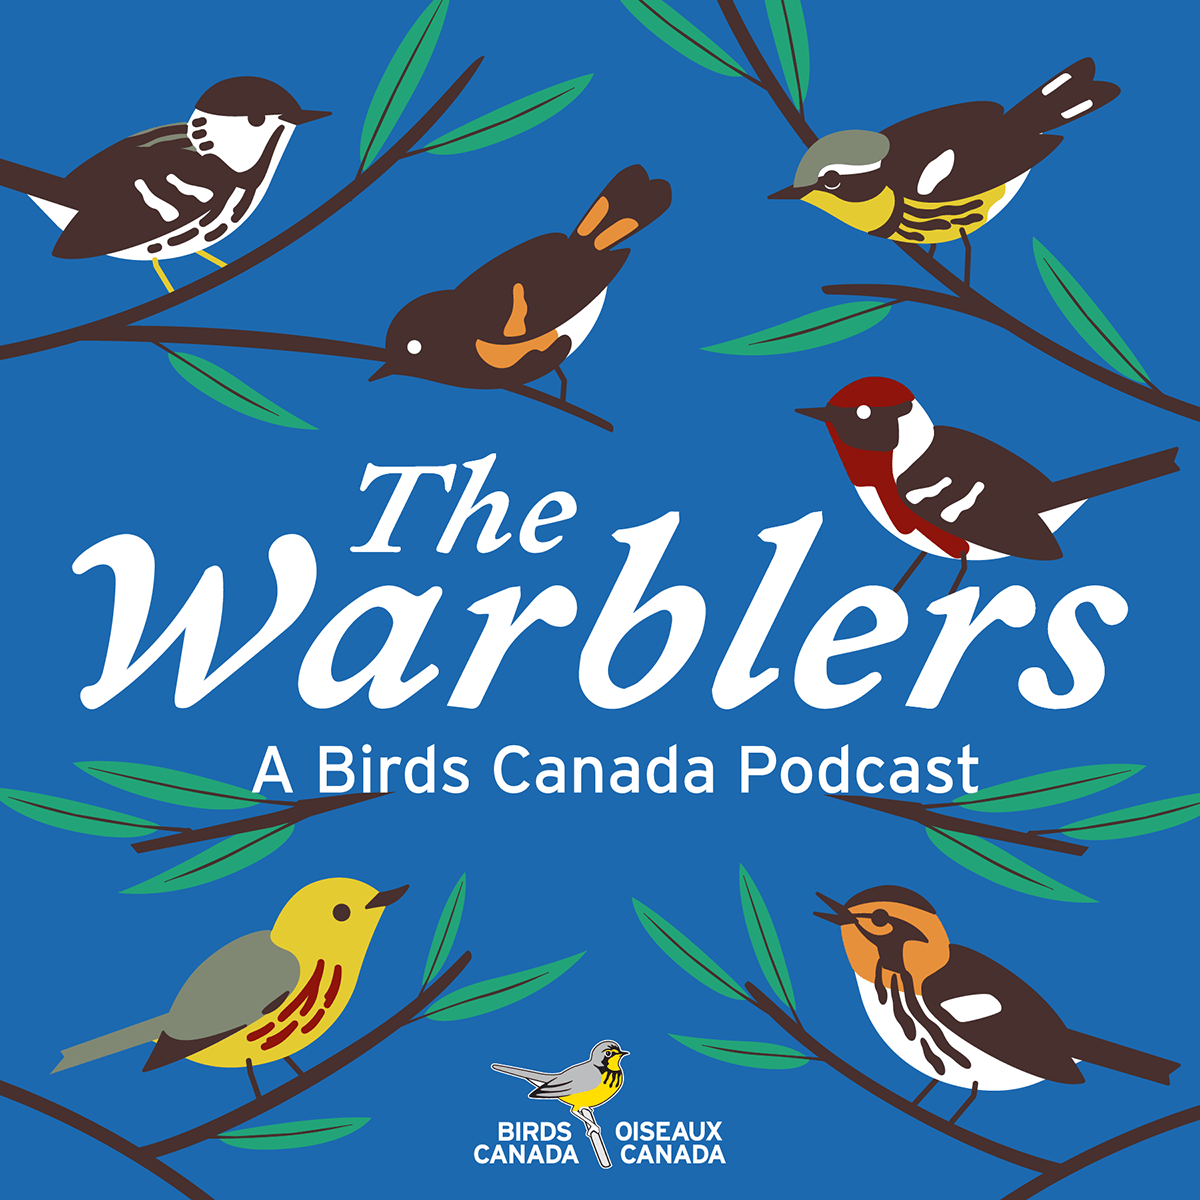 """Coming soon: """"The Warblers"""" podcast will inform, entertain, inspire!"""